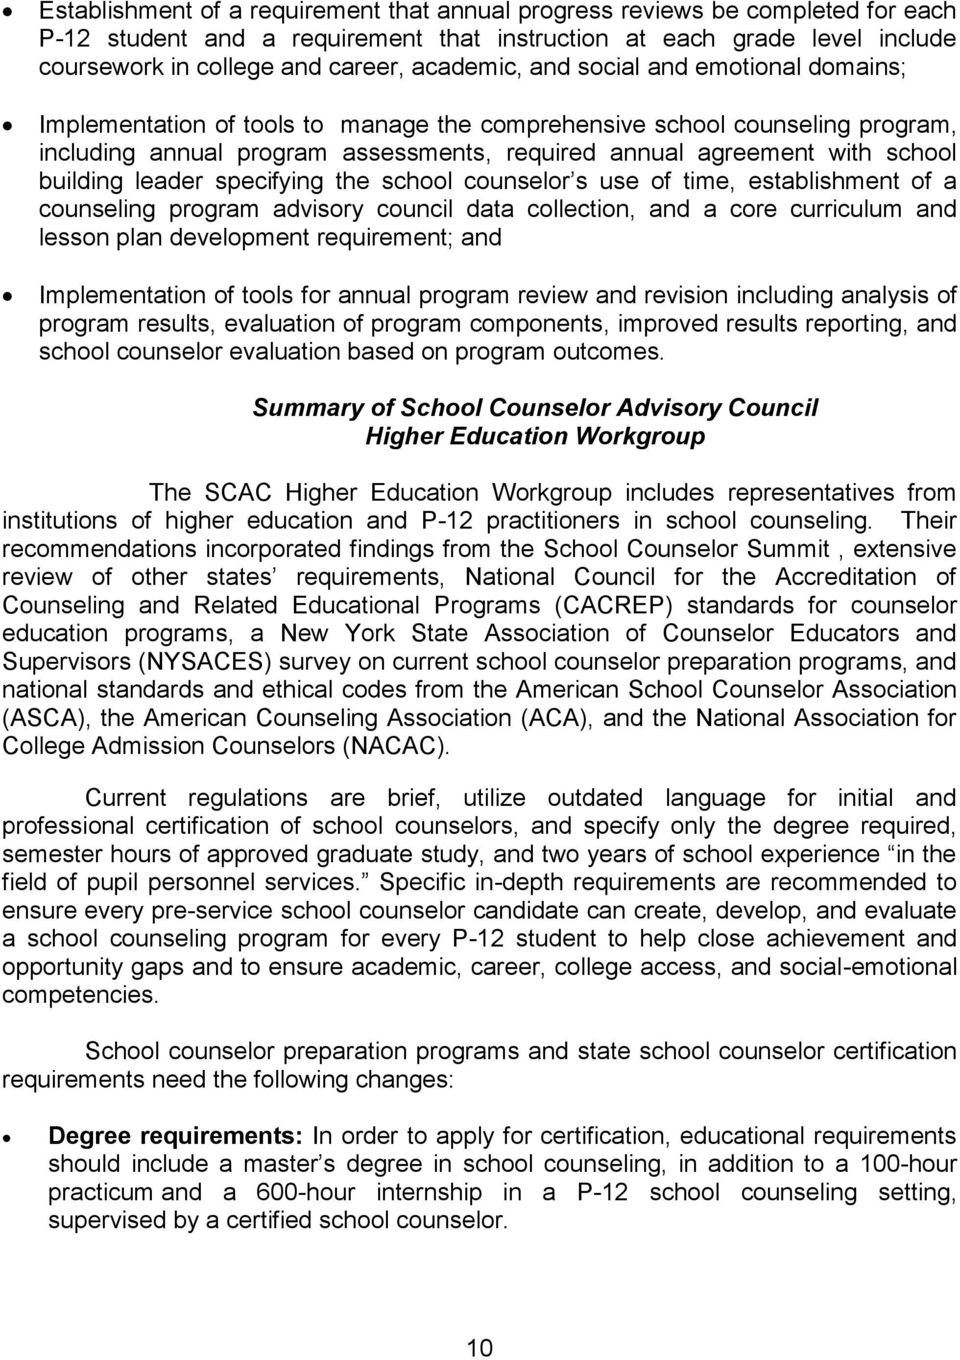 building leader specifying the school counselor s use of time, establishment of a counseling program advisory council data collection, and a core curriculum and lesson plan development requirement;